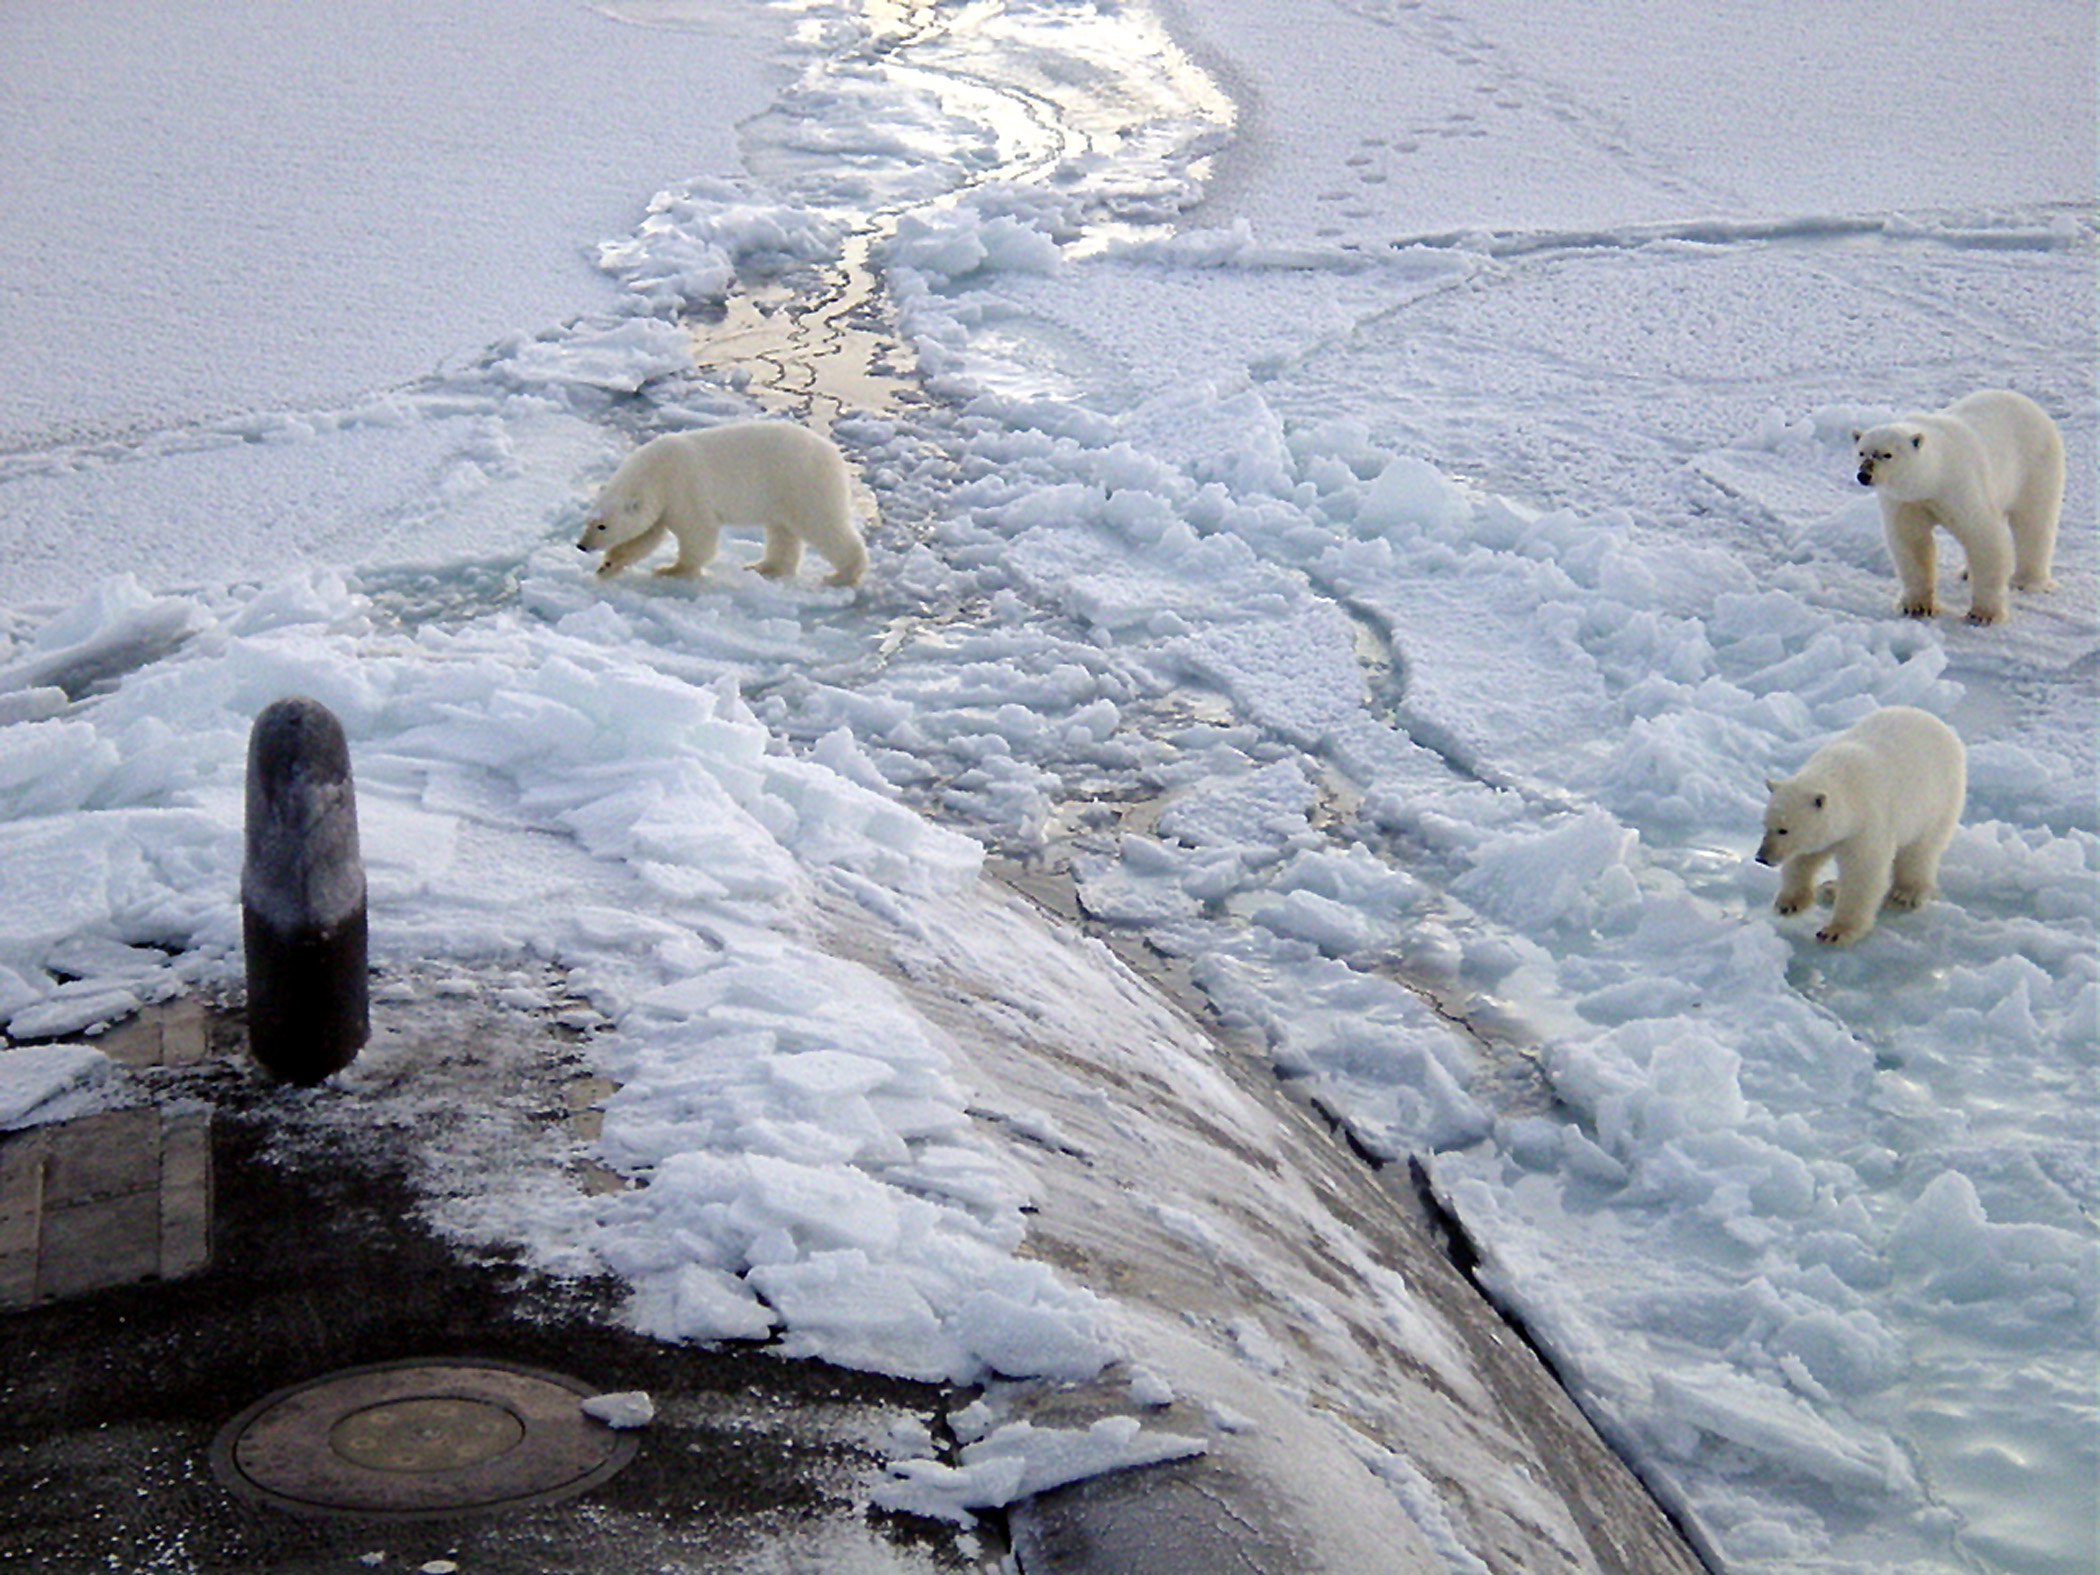 U S  Navy Announces Early End to Alaskan Ice Camp | The Center for